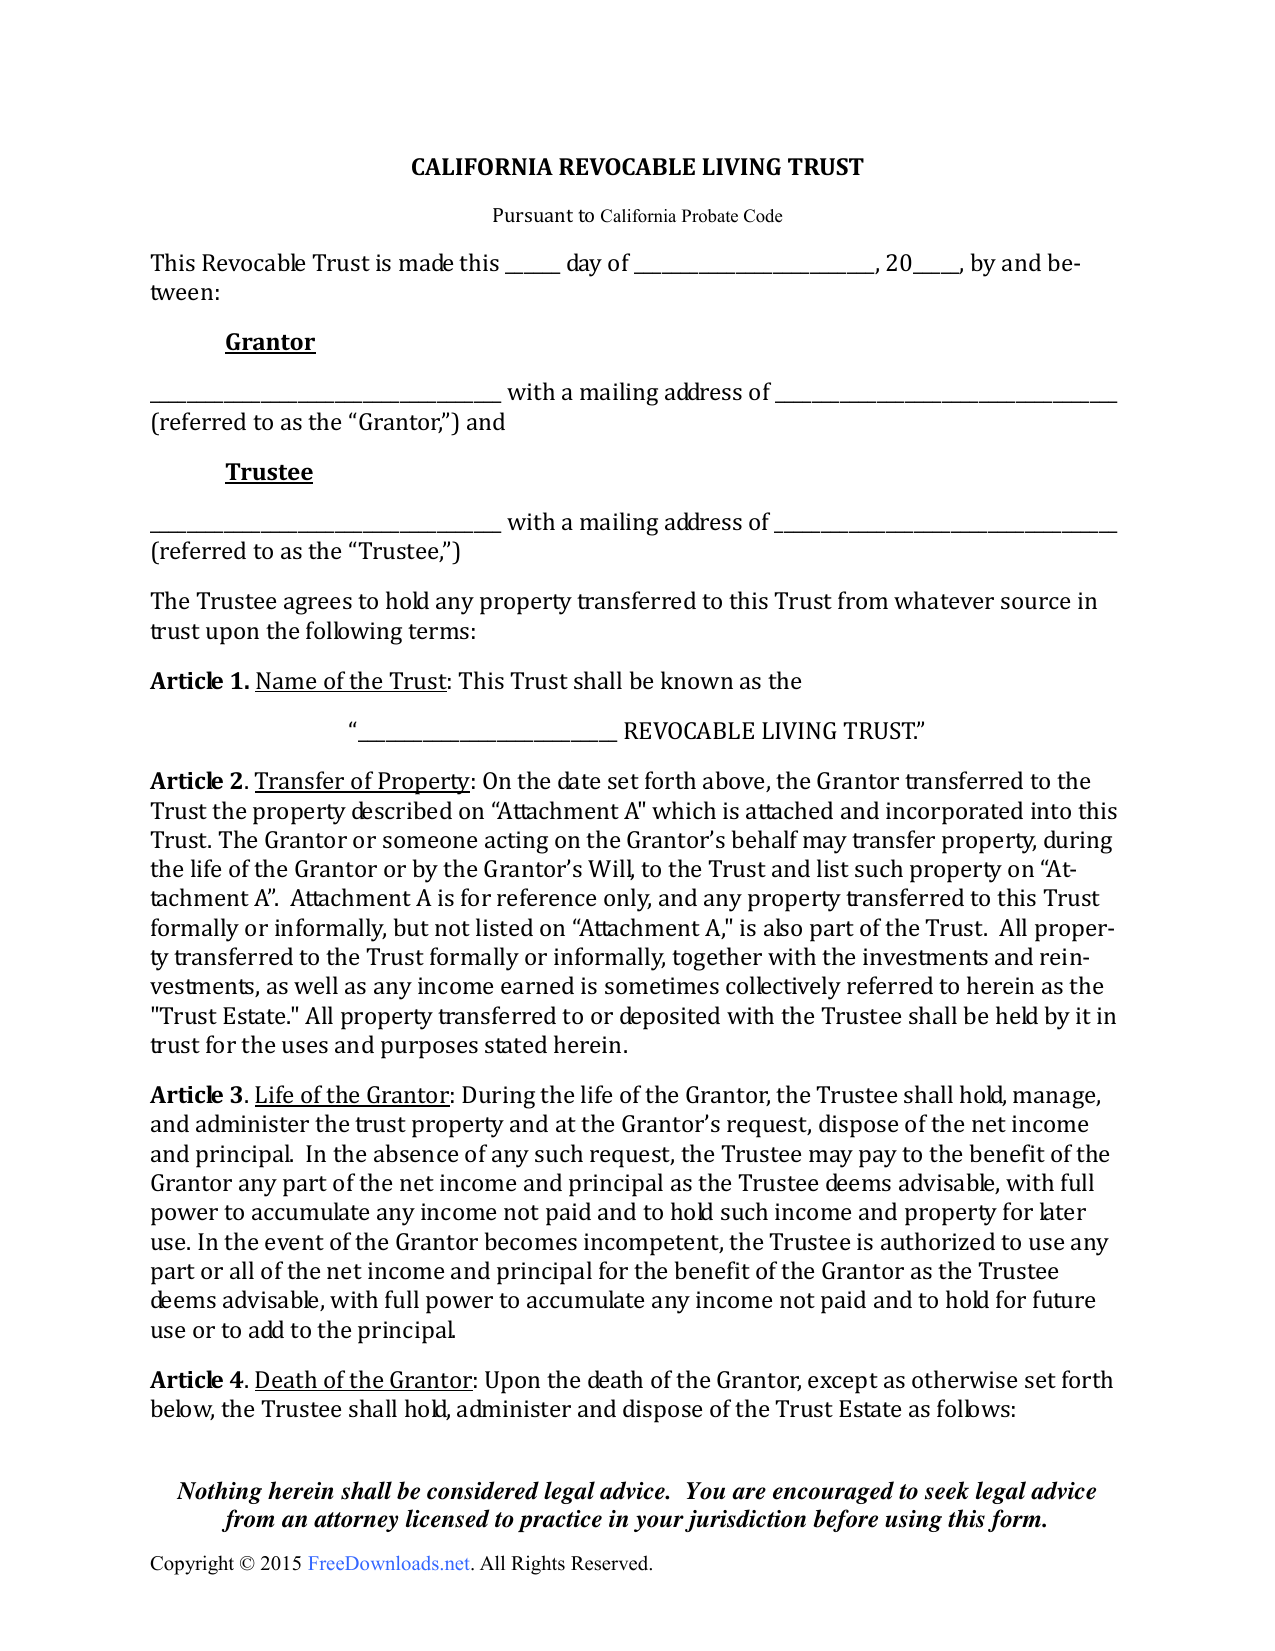 download california revocable living trust form